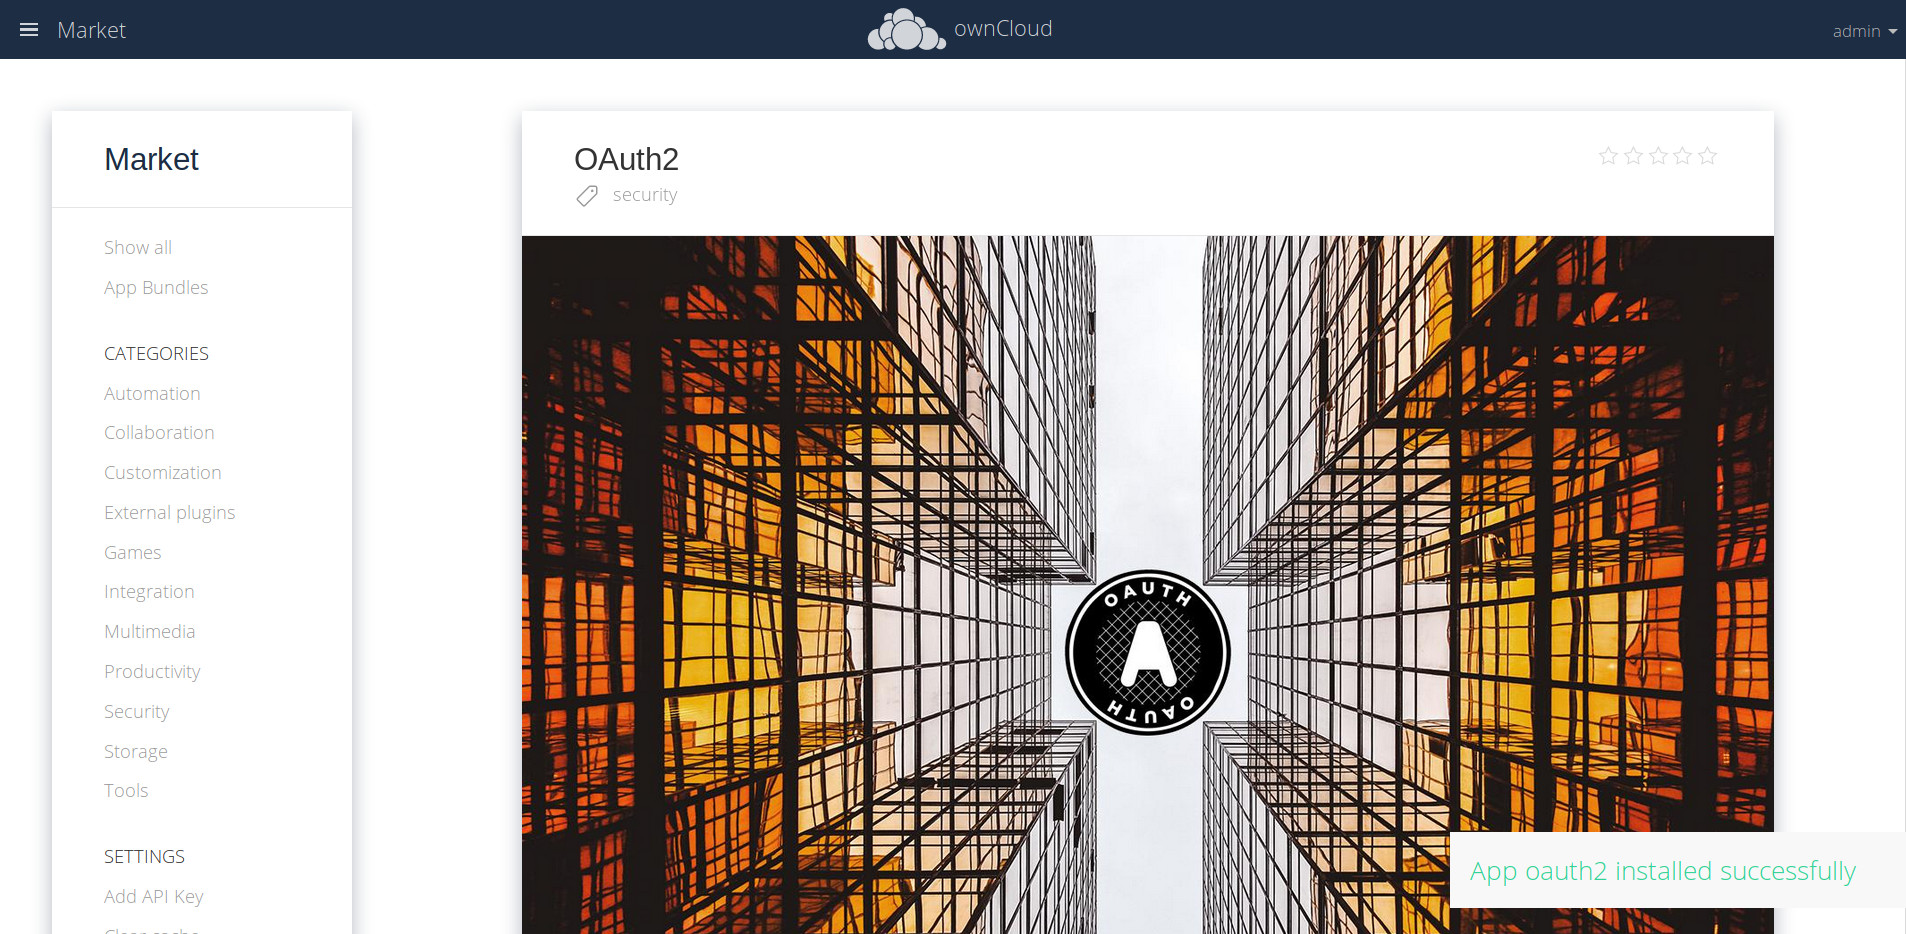 How to Use Two-Factor Authentication With the ownCloud